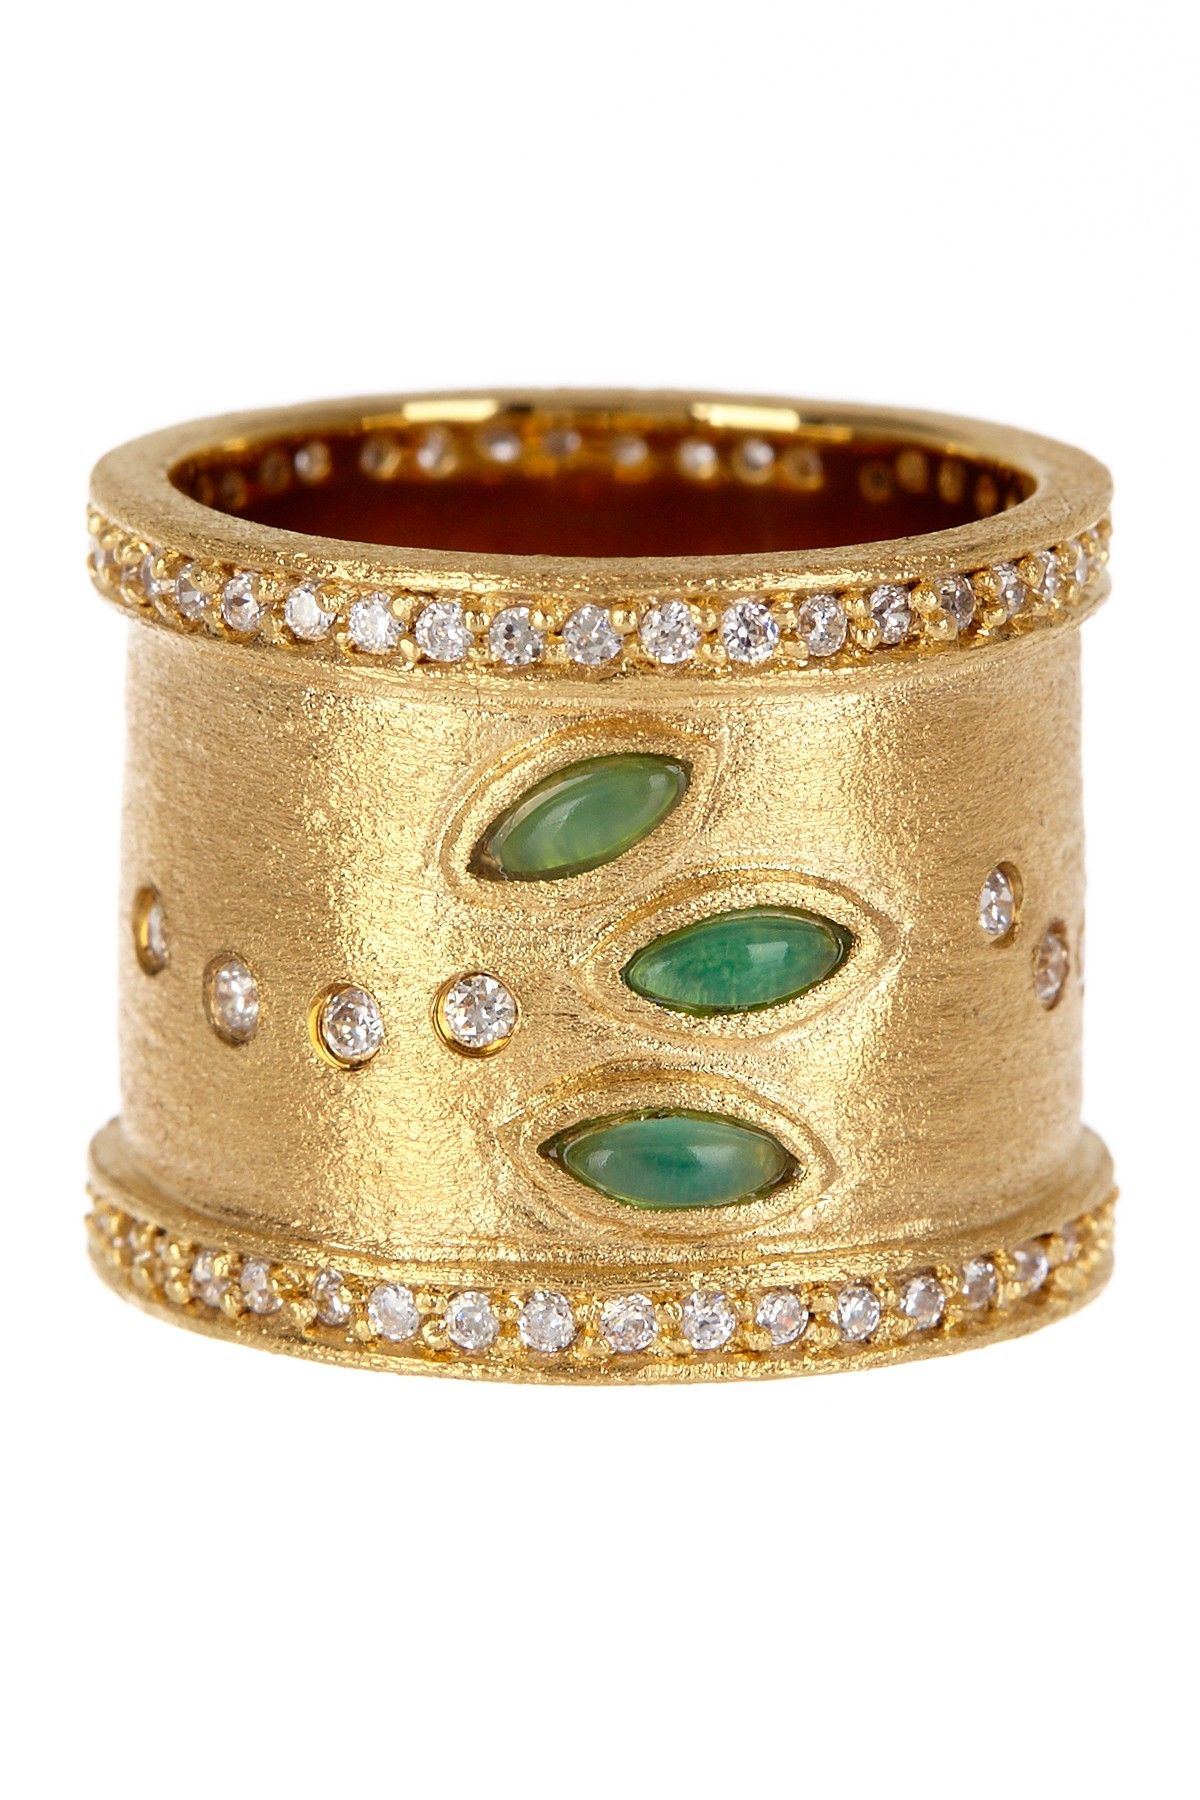 K gold clad faceted green onyx and simulated diamond band ring on